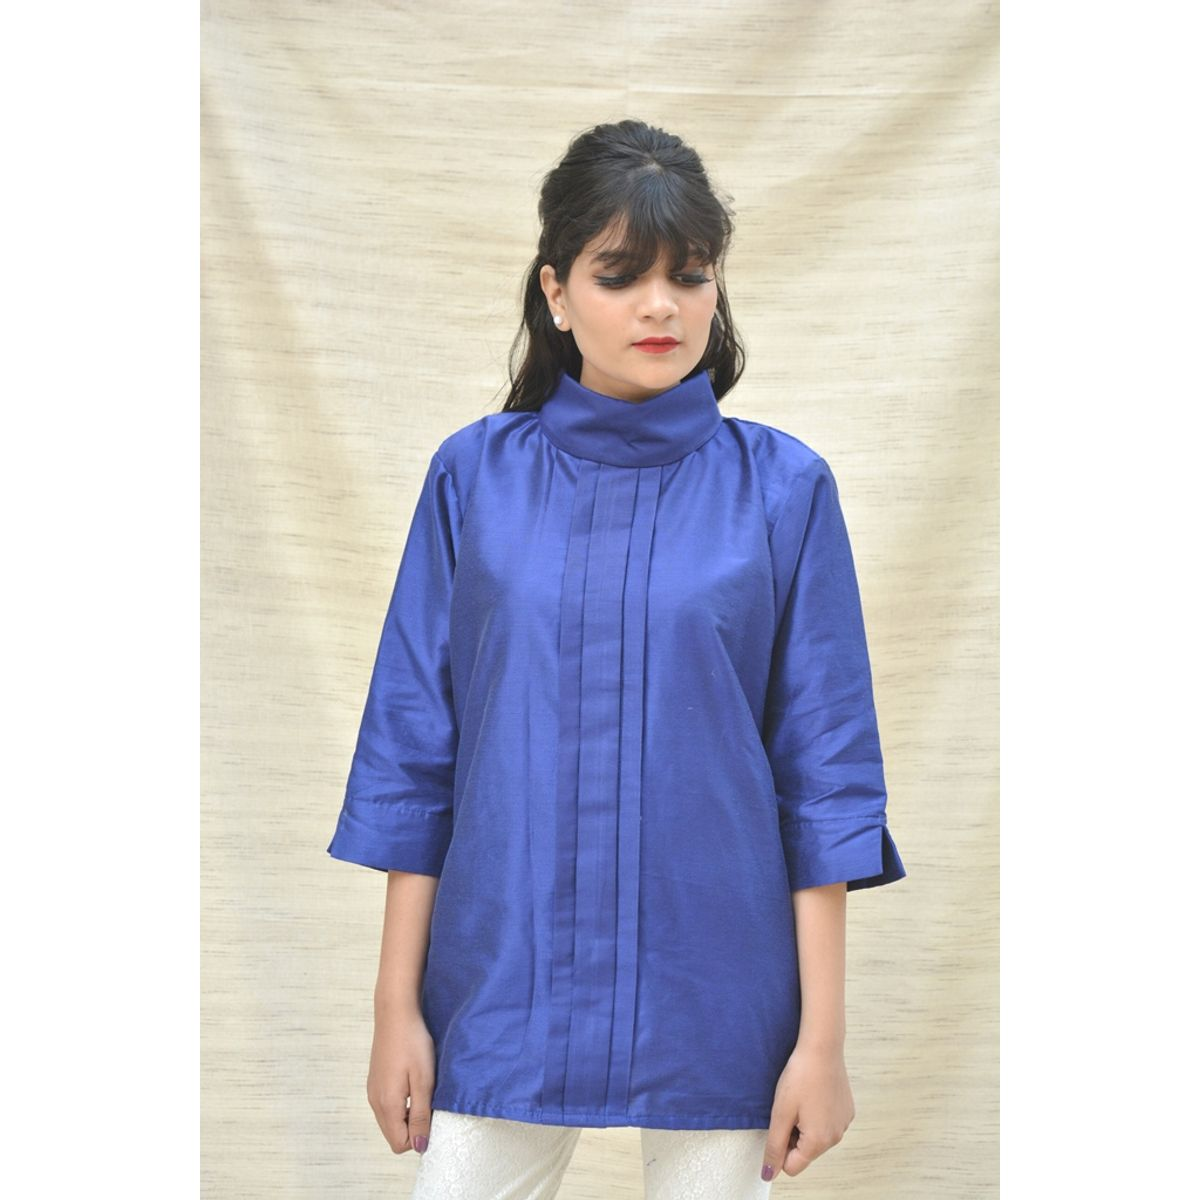 Khadi Silk Turtle Neck Blue Top